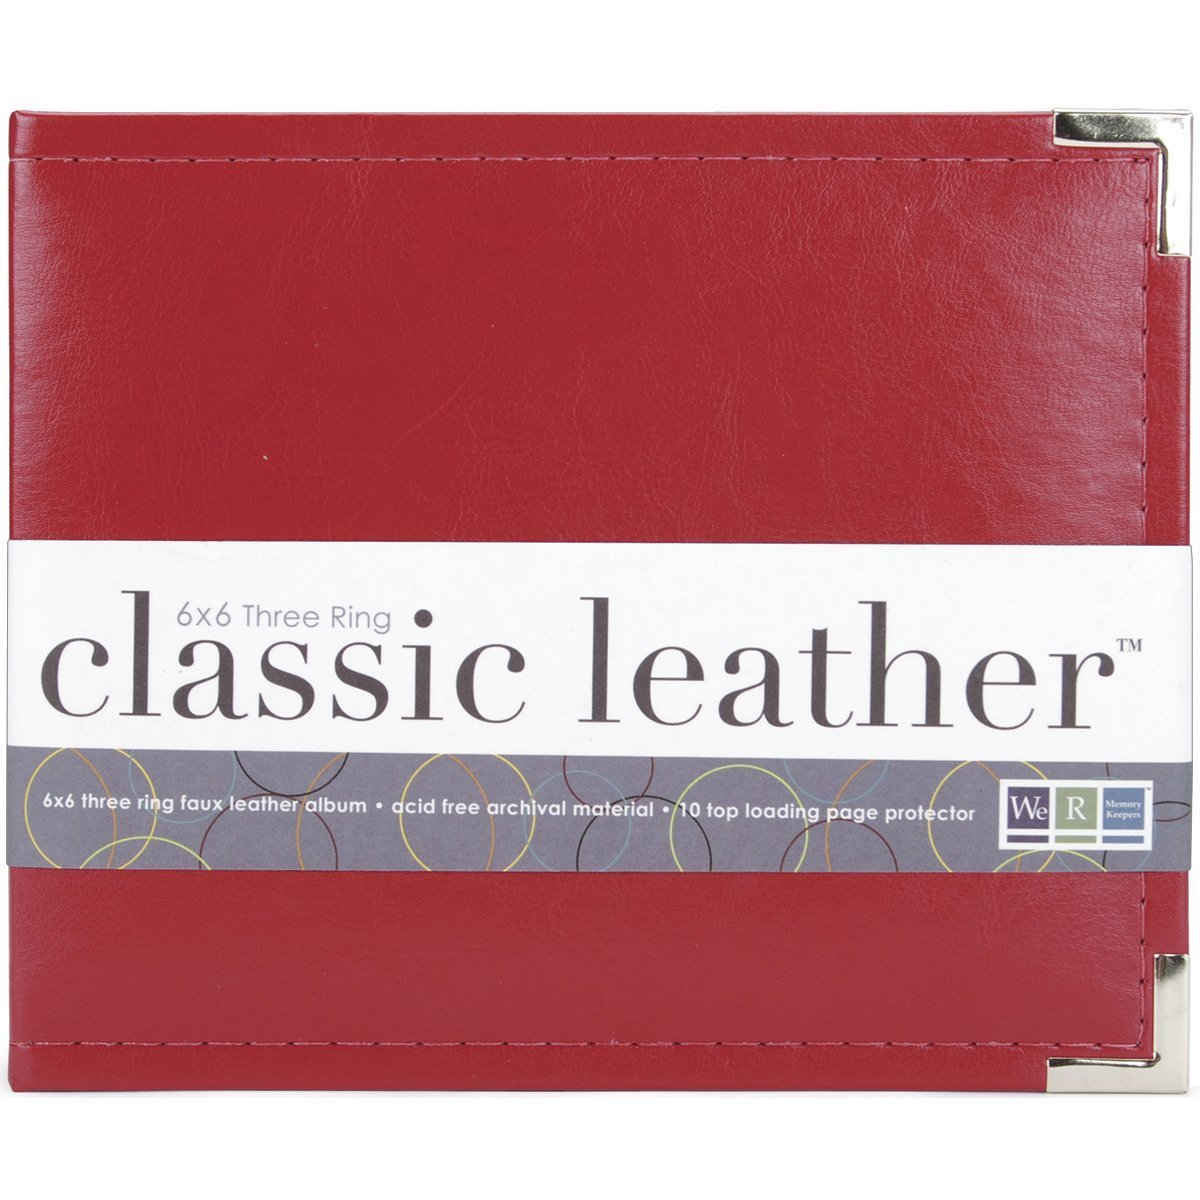 We R Memory Keepers 40393-7 Classic Leather - 6x6 inch Ring Album, Real Red by We R Memory Keepers